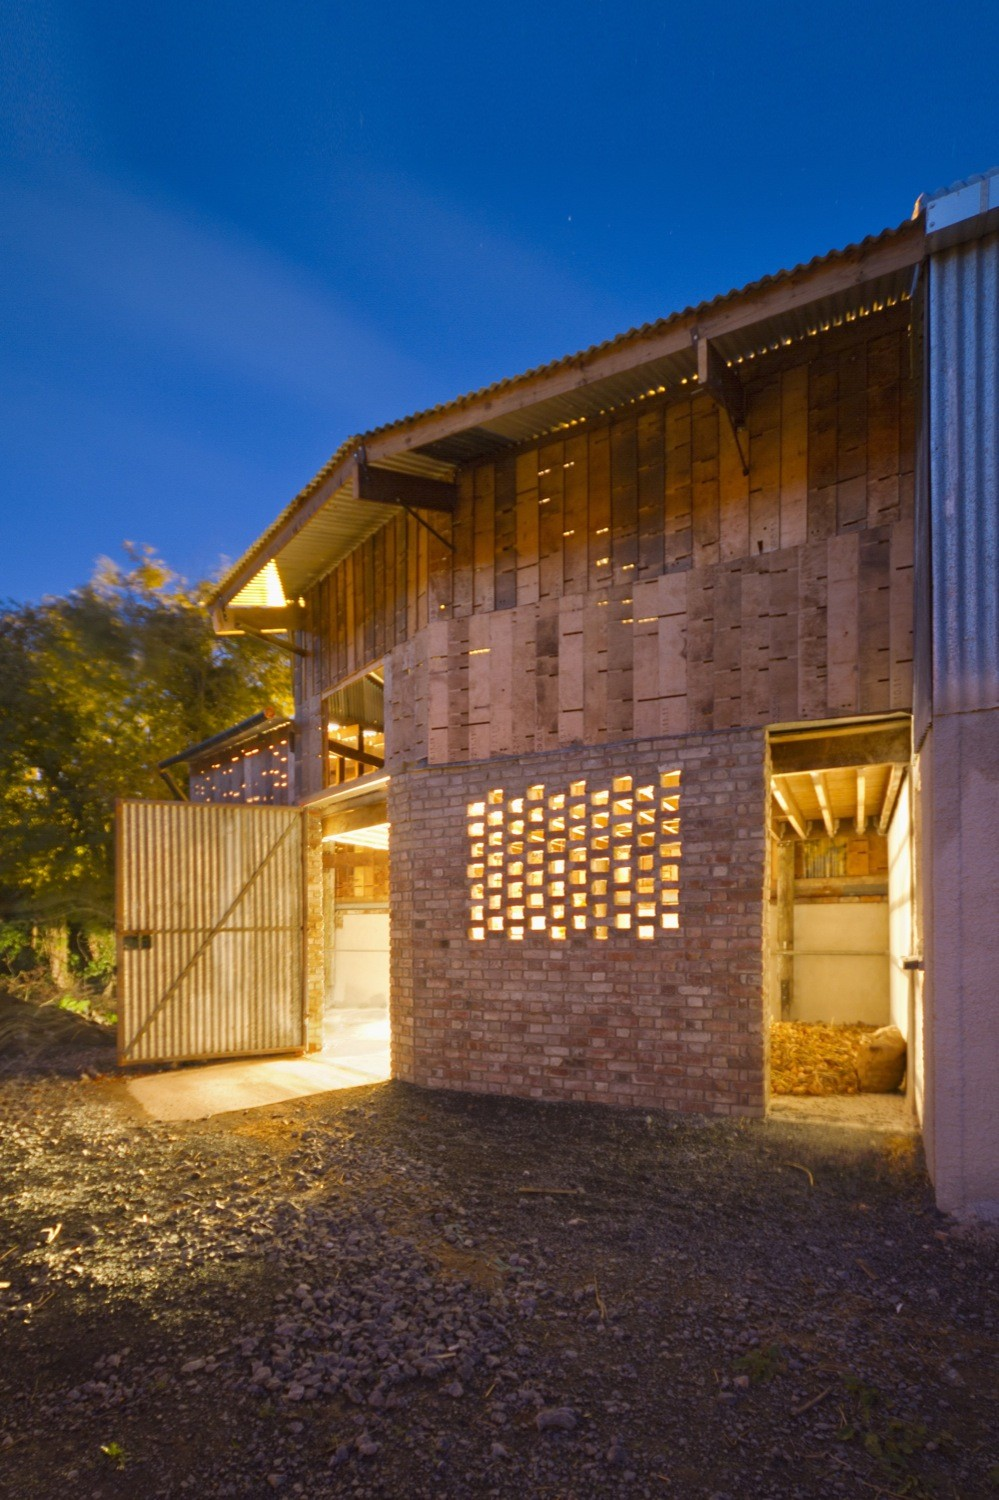 Cowshed__design_and_build_workshops_led_by_Cowshed_Collective._Image_by_Ste_Murray_(7).jpg